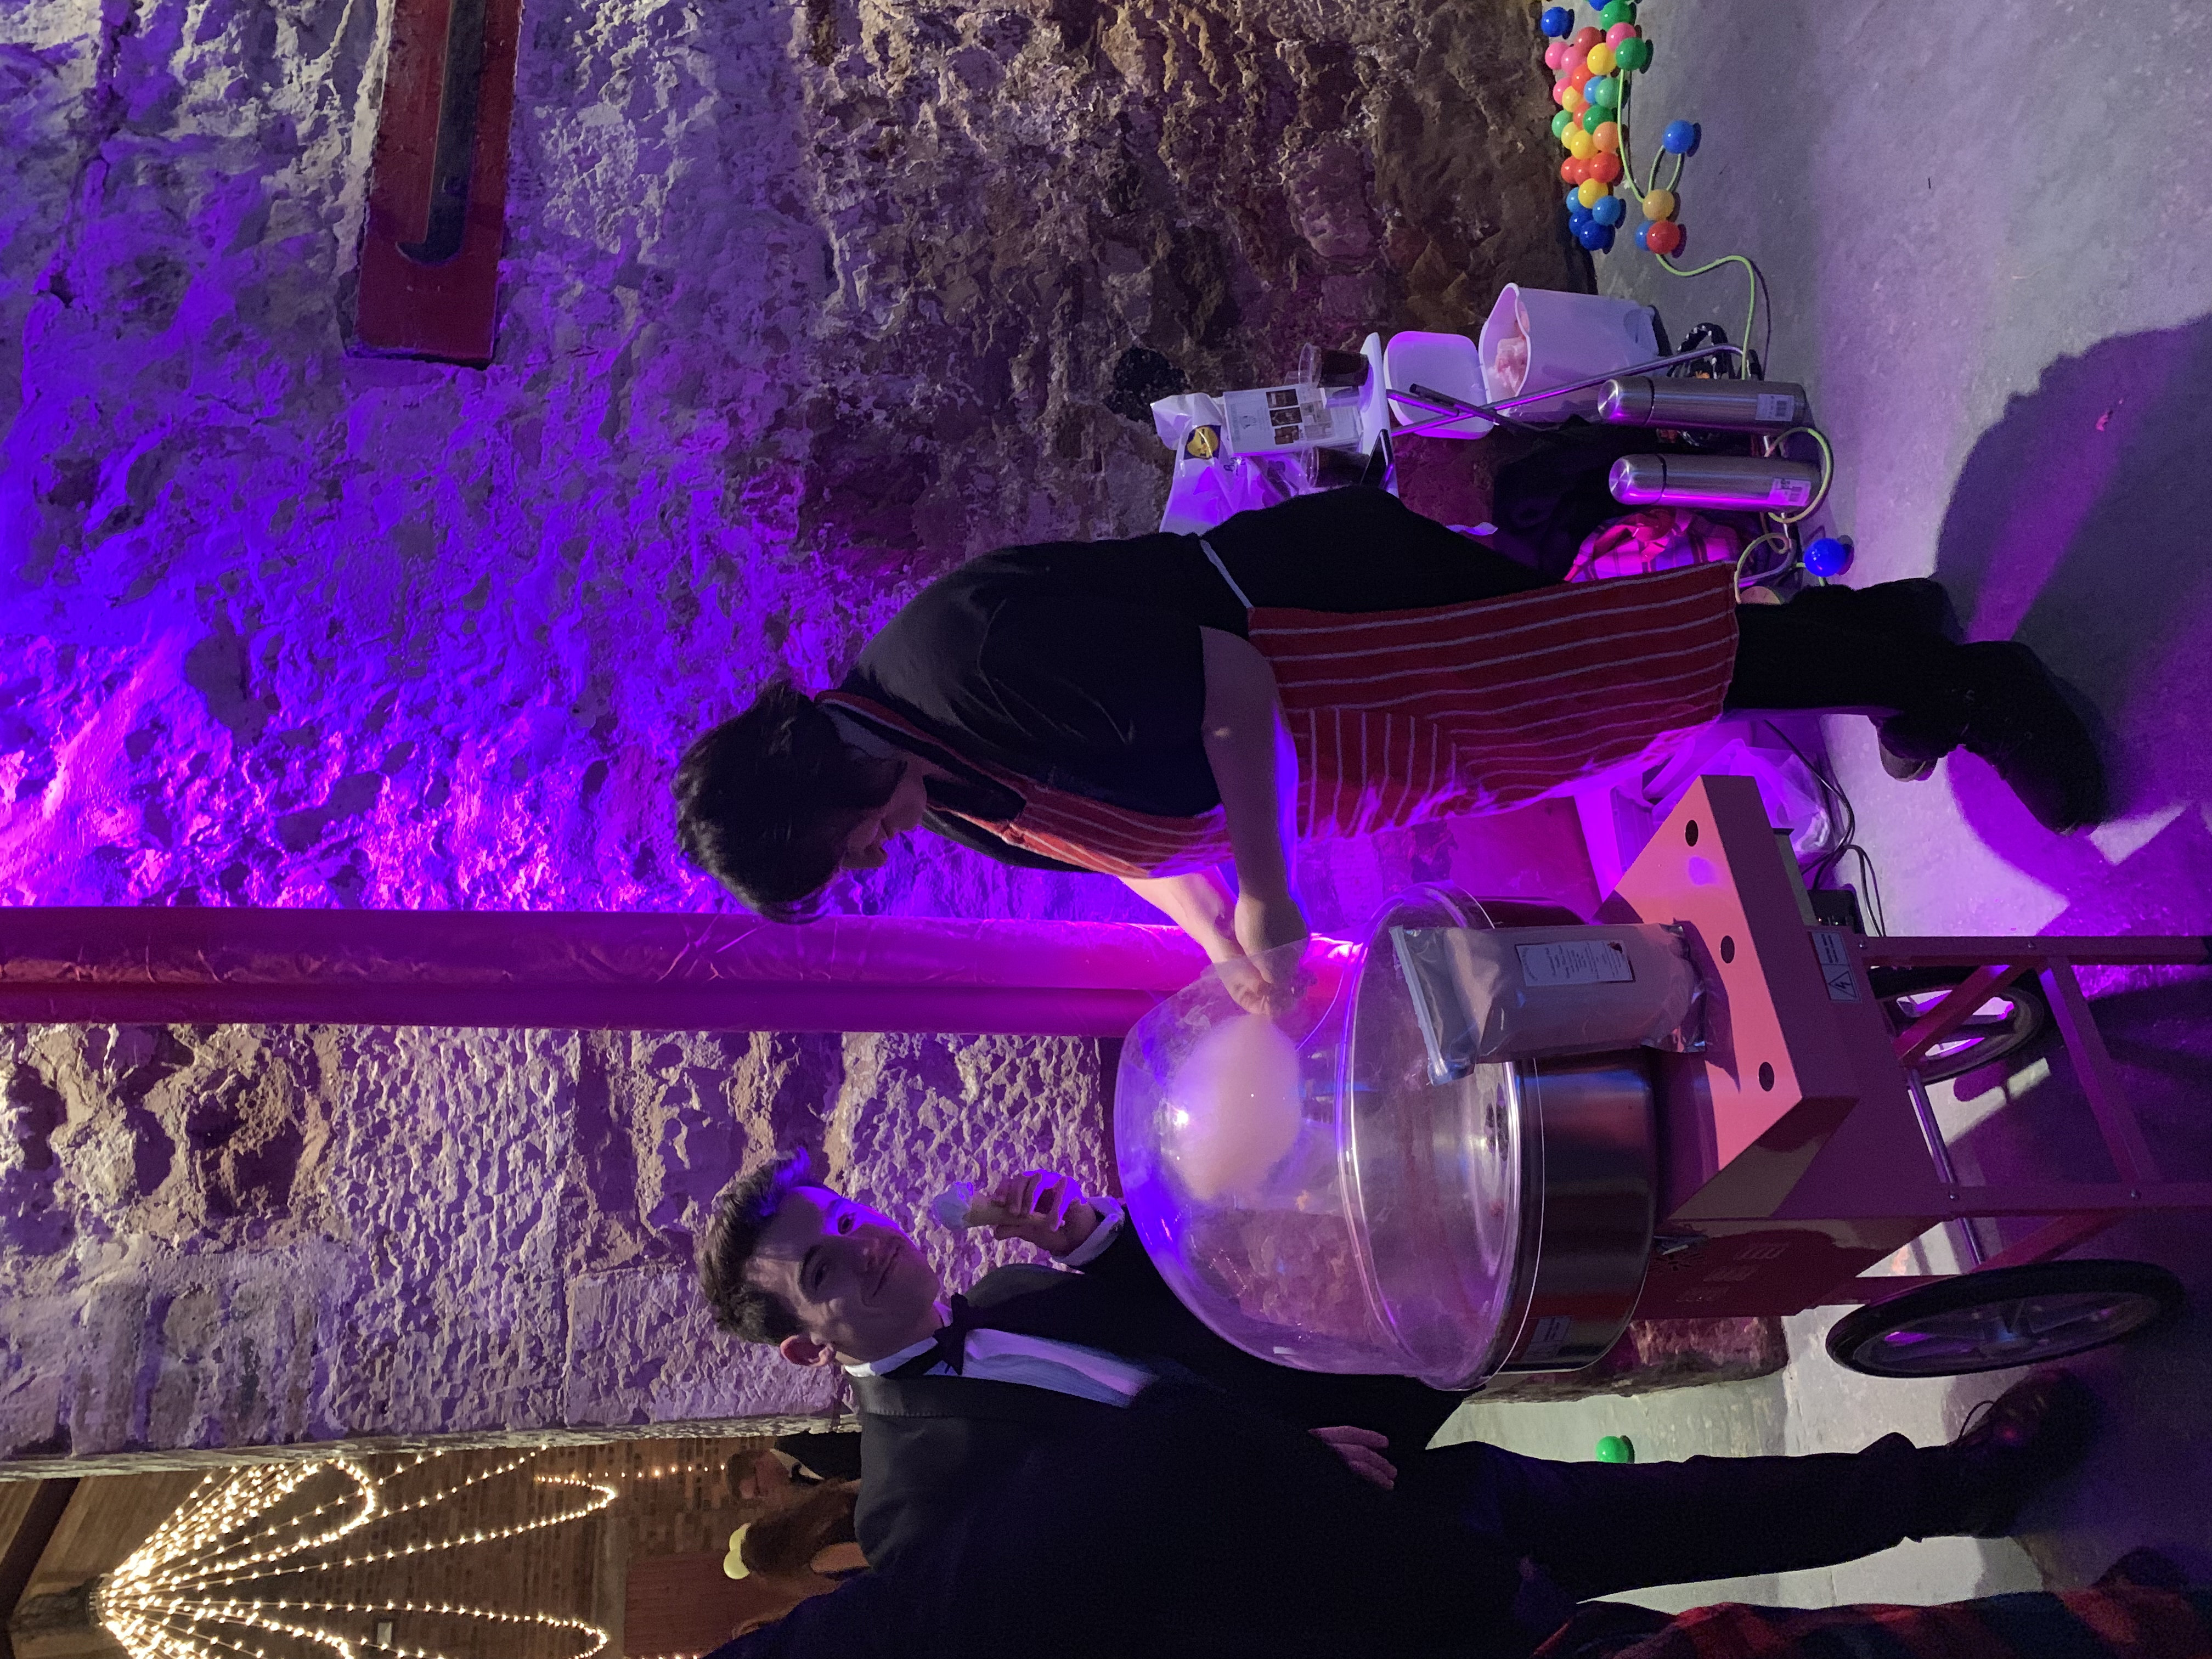 Candy floss at Bute Ball, Kinkell Byre, St Andrews